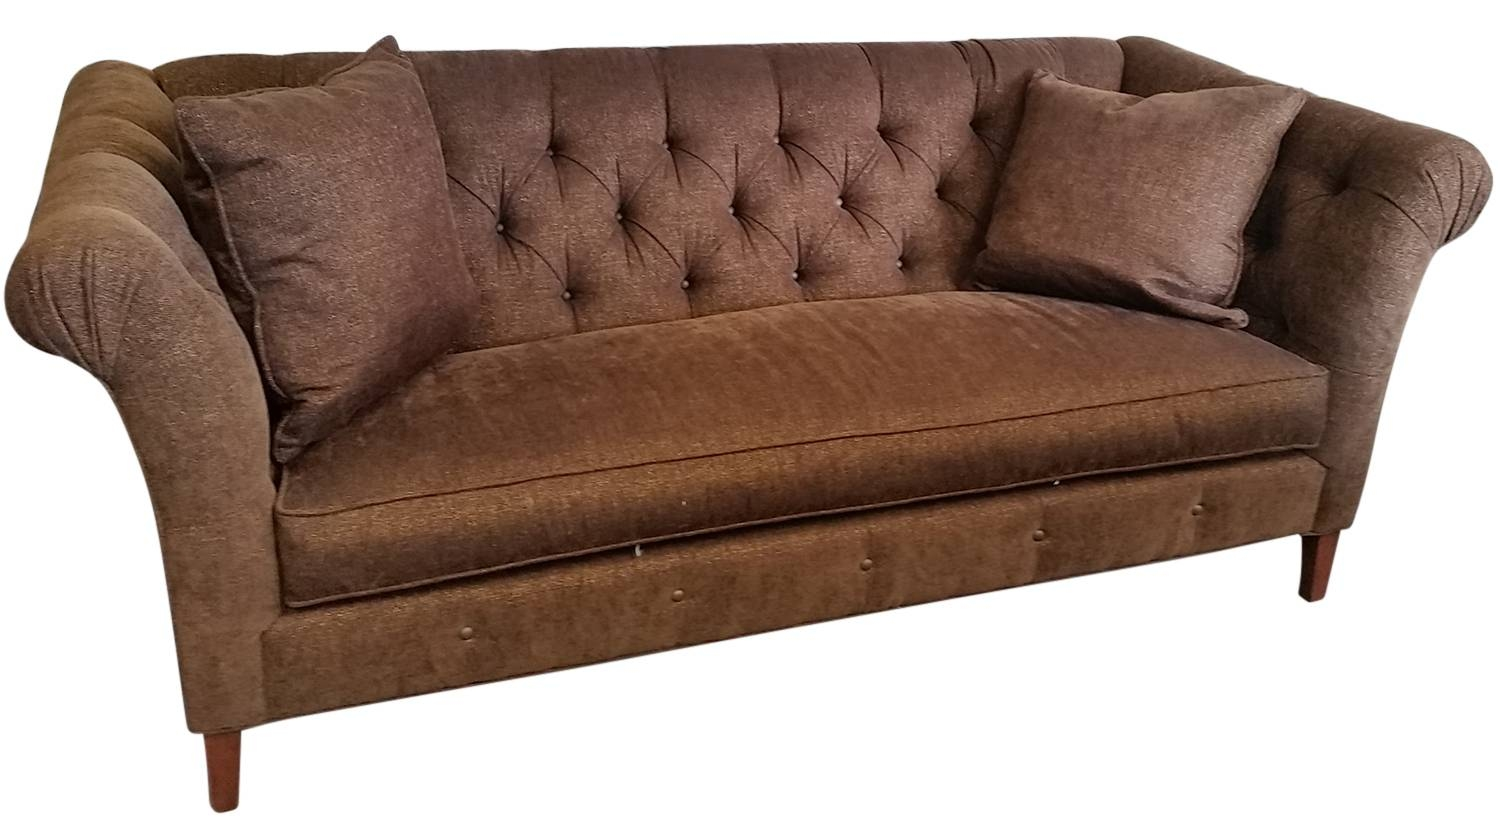 Circle Furniture - Circle Furniture | Furniture Outlet intended for Bridgeport Sofas (Image 5 of 15)